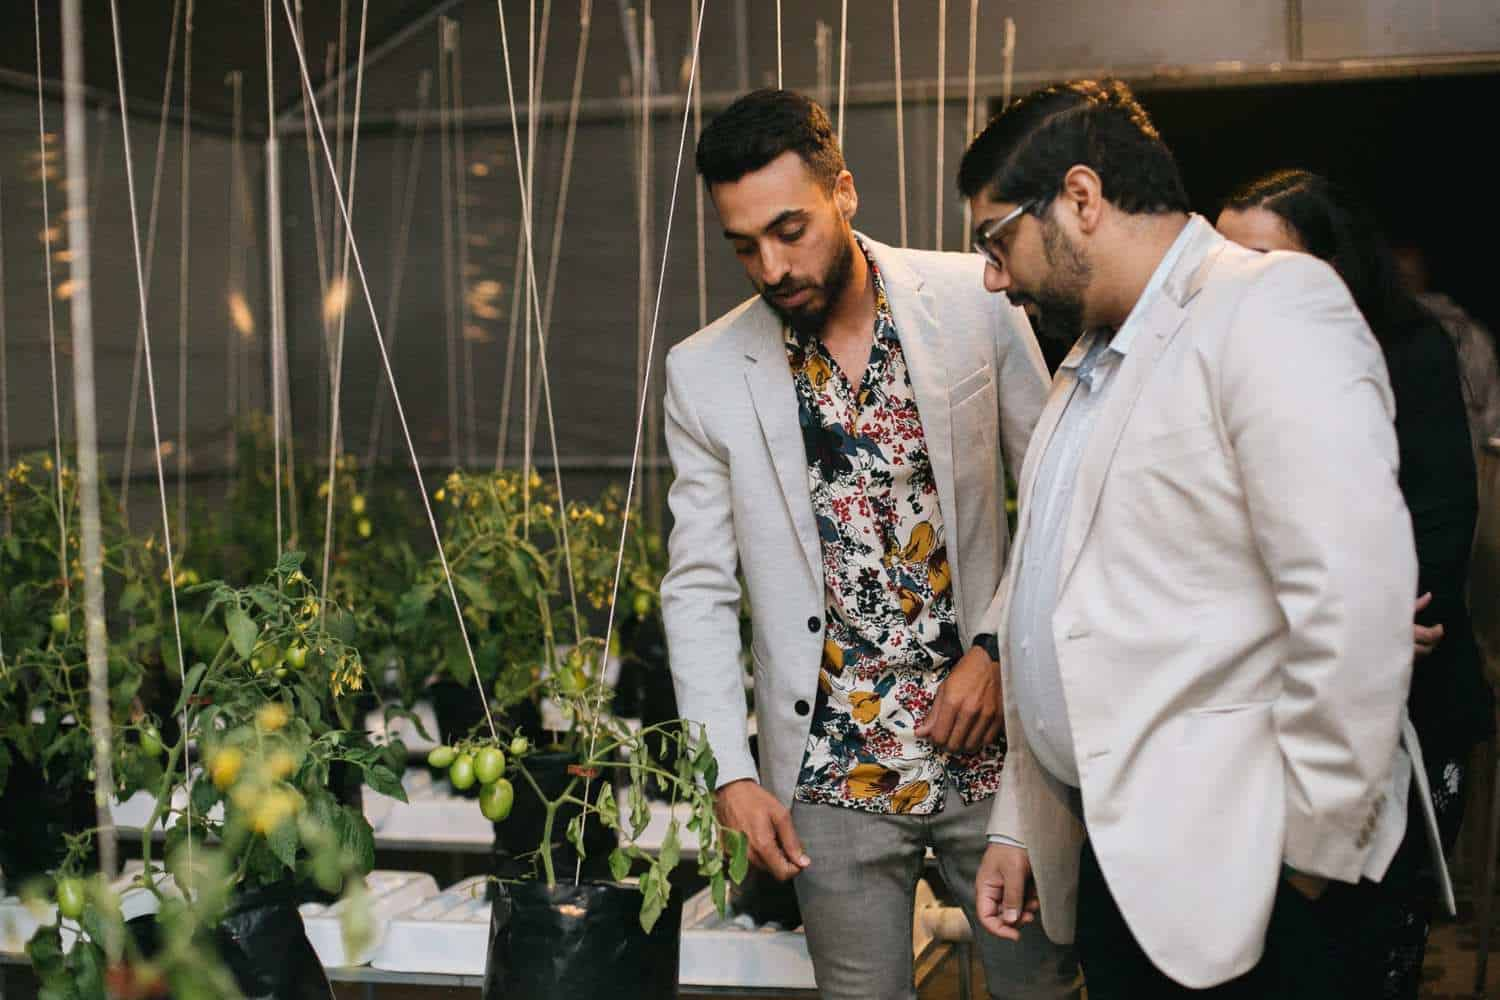 Semi-provincial professional batsman Zakir Kathrada owns a hydroponics farm on the rooftop of The Whippet Coffee in the heart of Melville in Johannesburg.